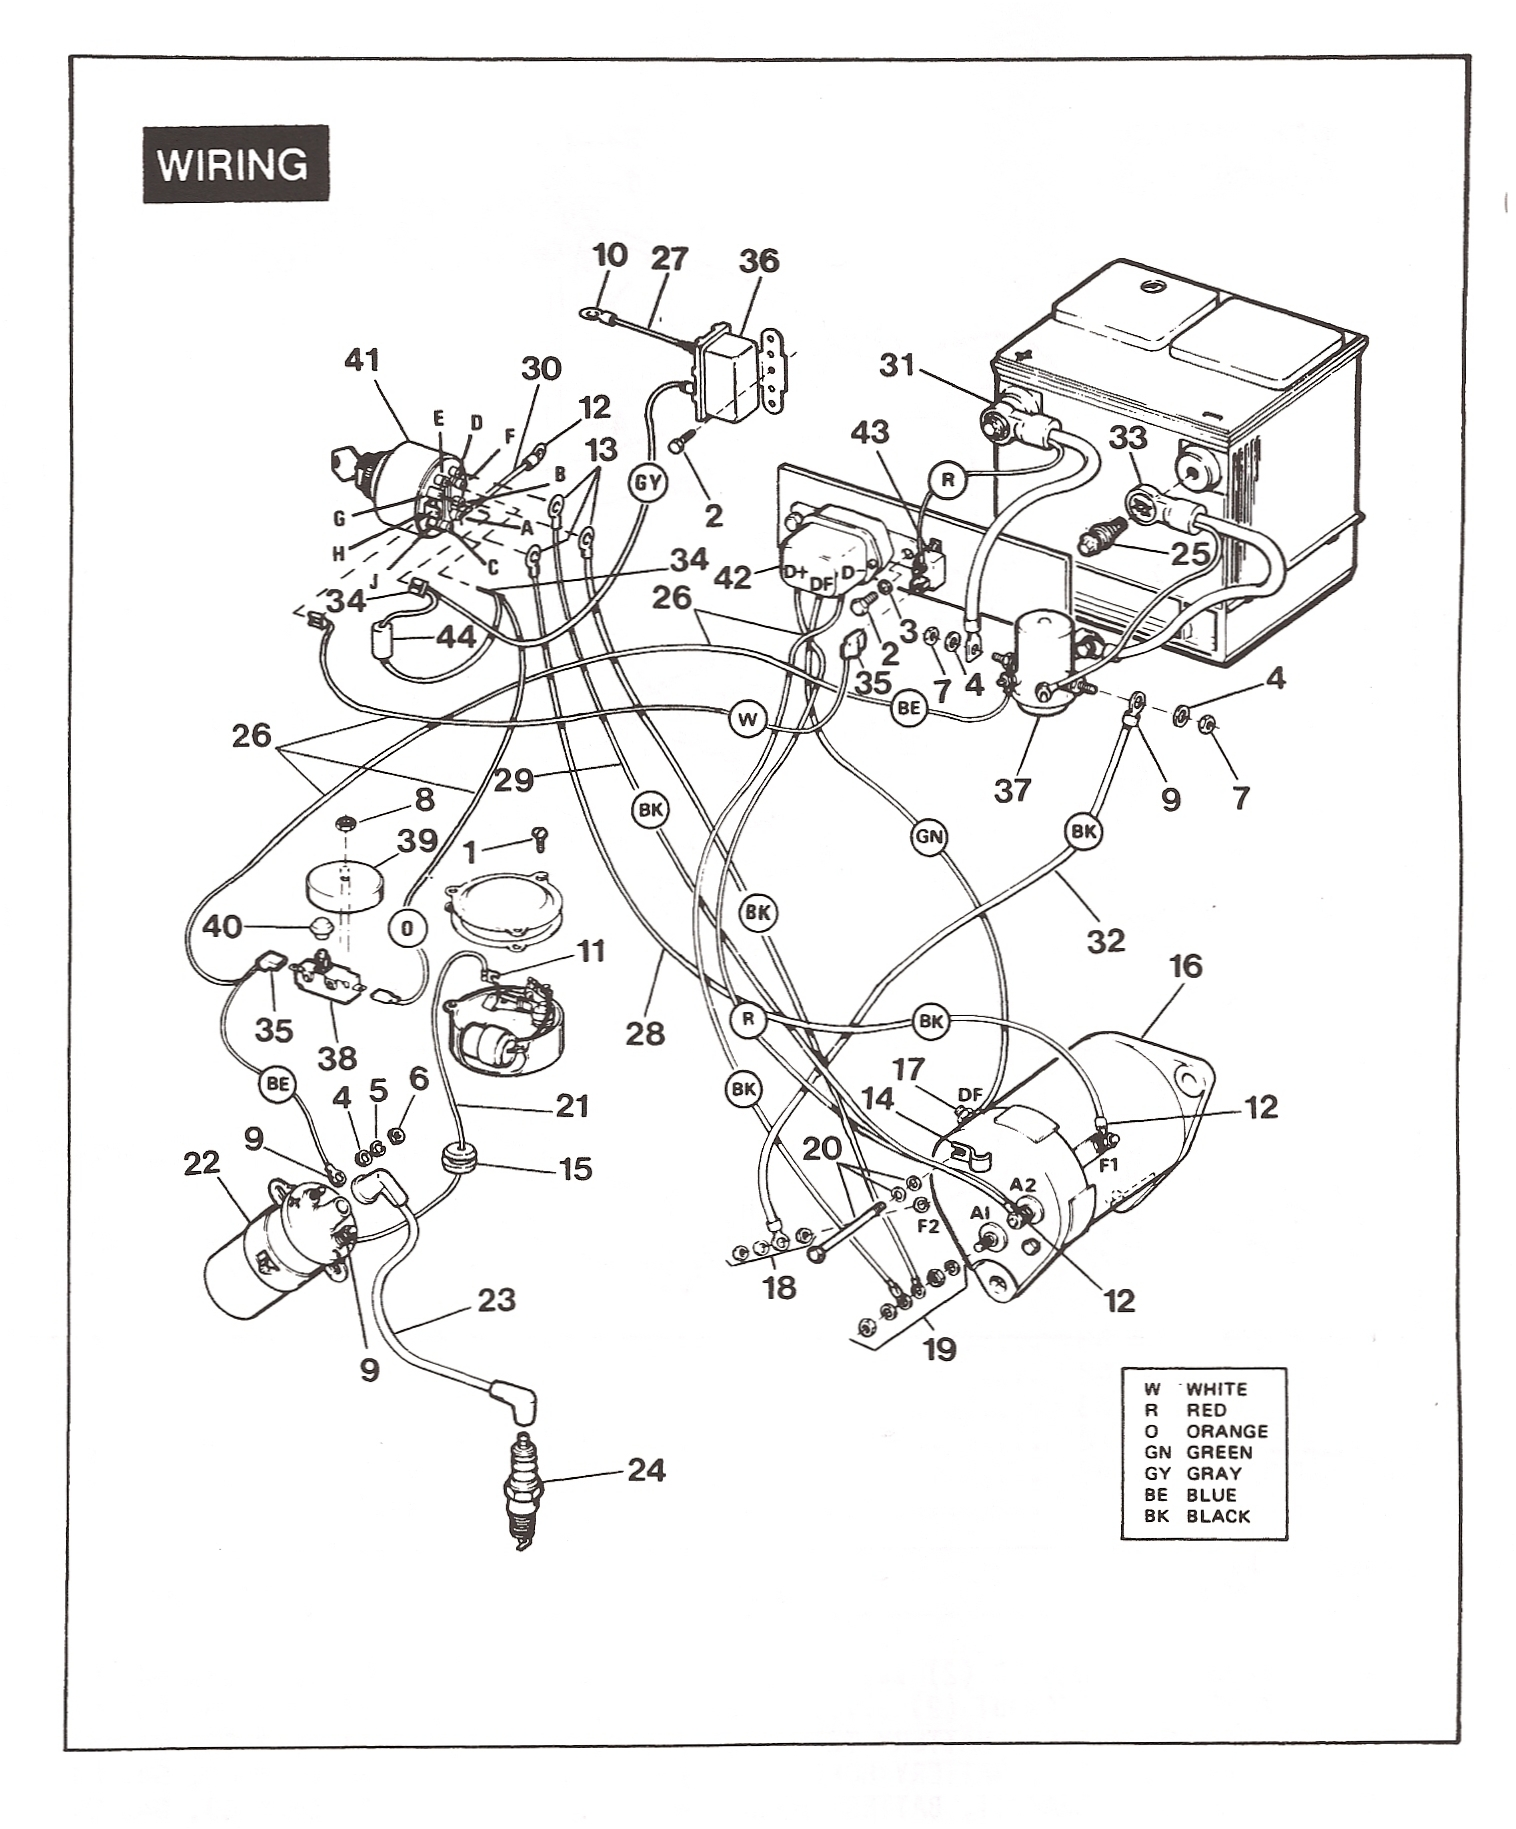 82_86_Columbia_Harley?resize=665%2C802 wiring diagram for columbia par car 48 volt readingrat net columbia wiring diagram at crackthecode.co